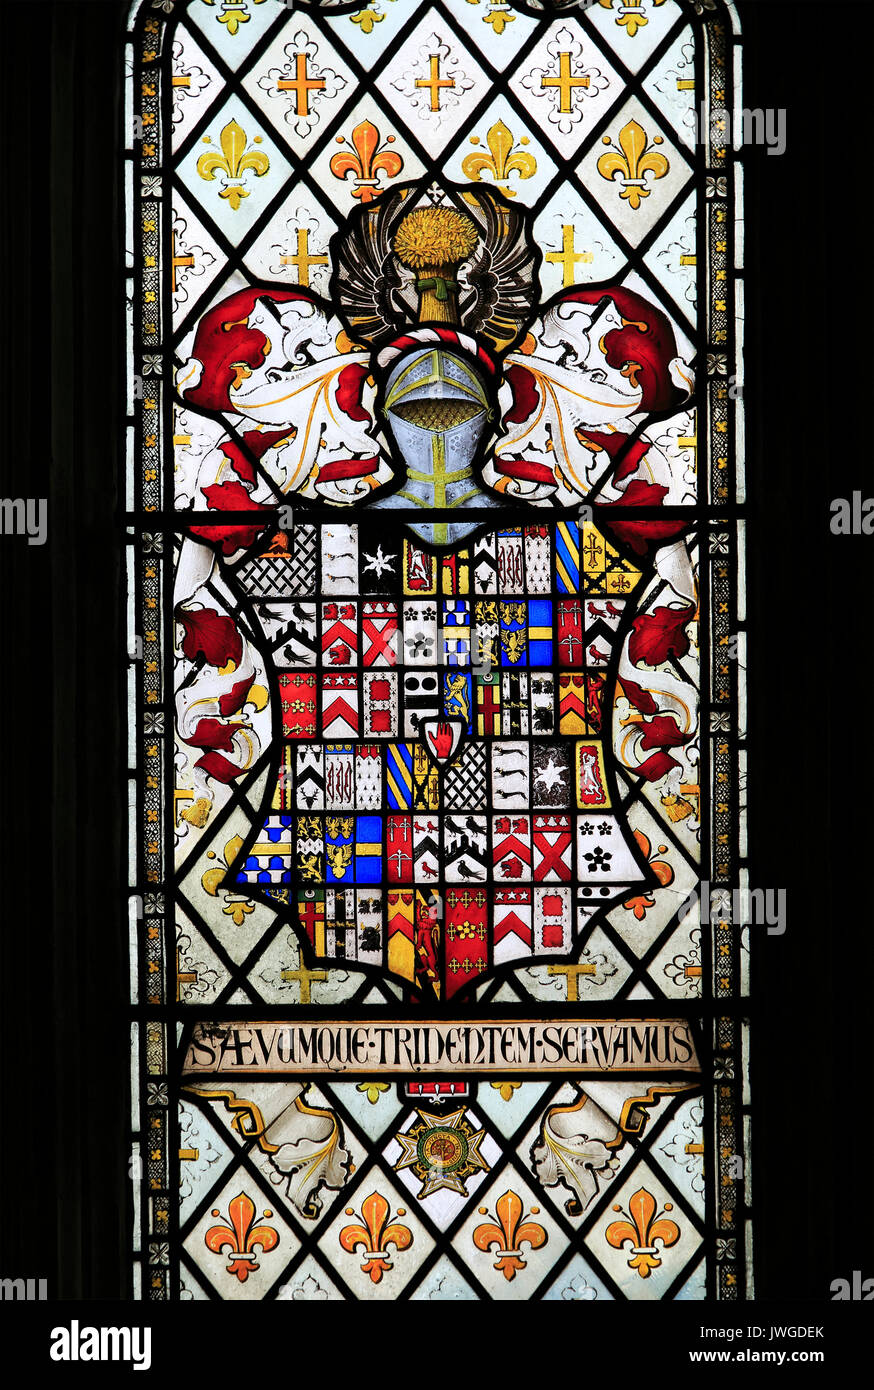 Heraldic Arms Stained Glass Stock Photos Amp Heraldic Arms